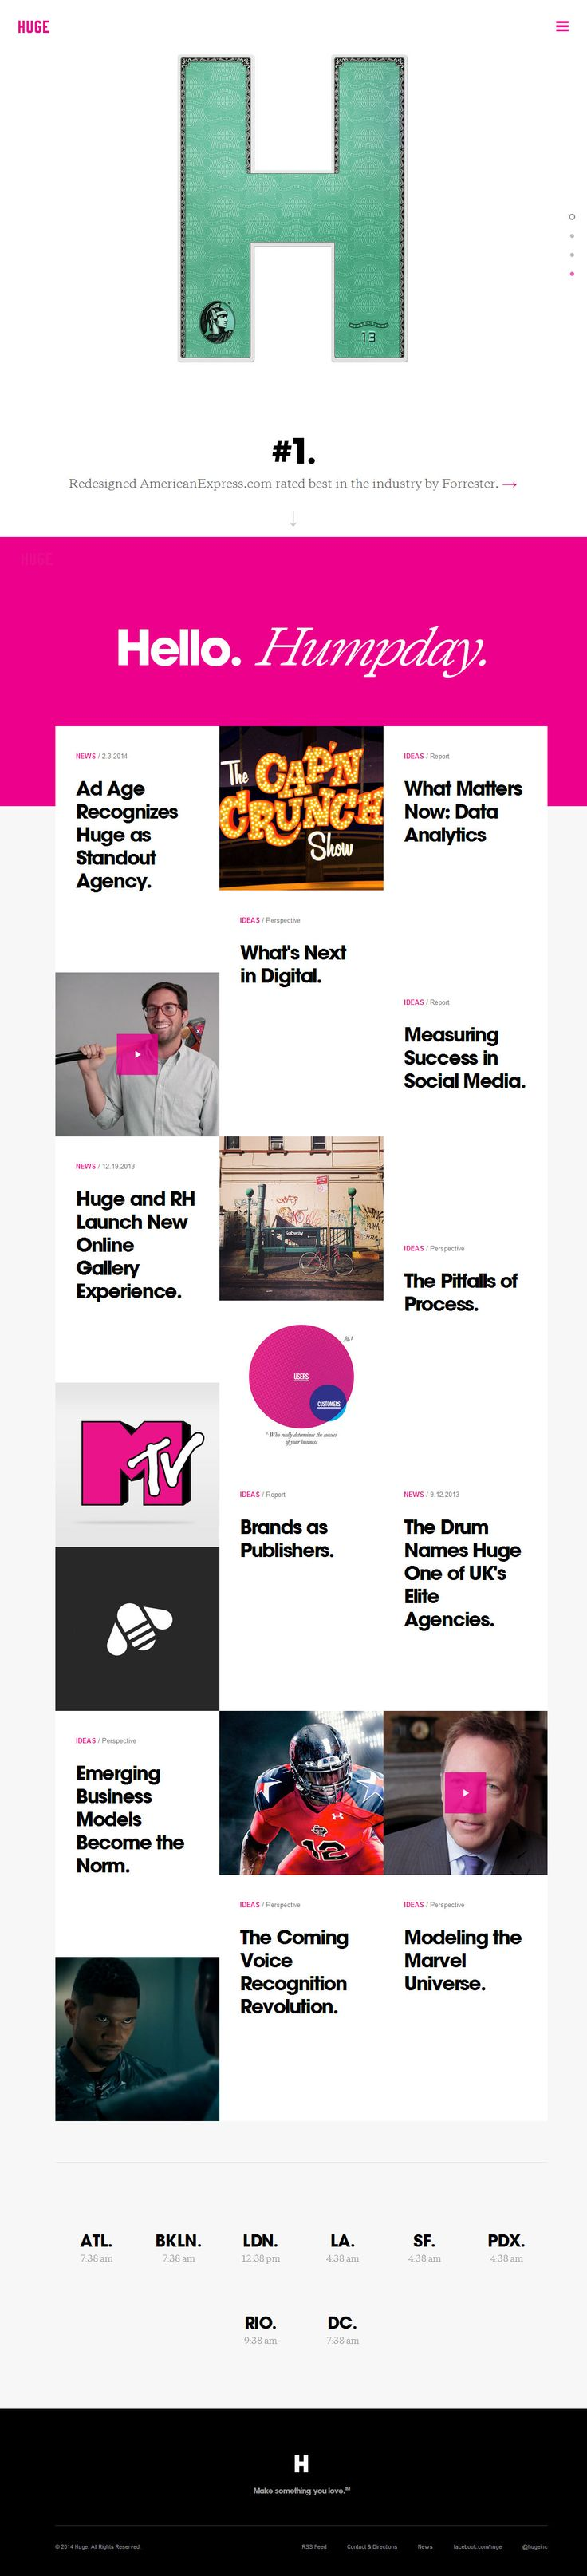 Site of the Month February 2014. ´Huge Inc.´ http://www.awwwards.com/web-design-awards/huge-inc